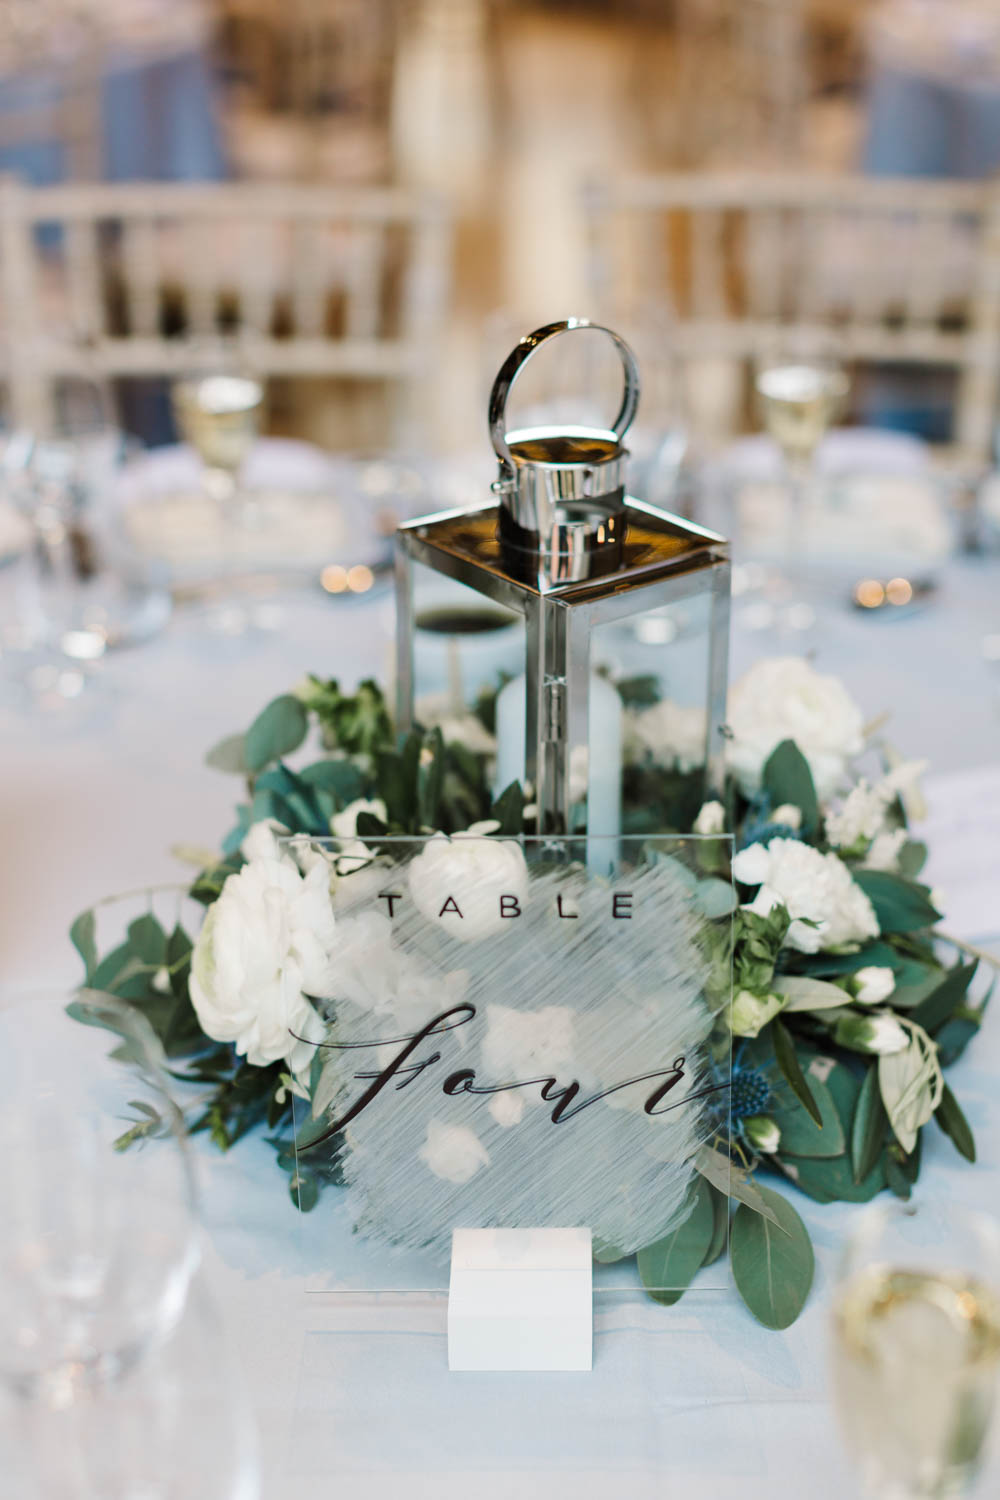 Centrepiece Hurricane Lamp Candle Flowers Acrylic Perspex Calligraphy Table Number Dove Grey Wedding Danielle Smith Photography